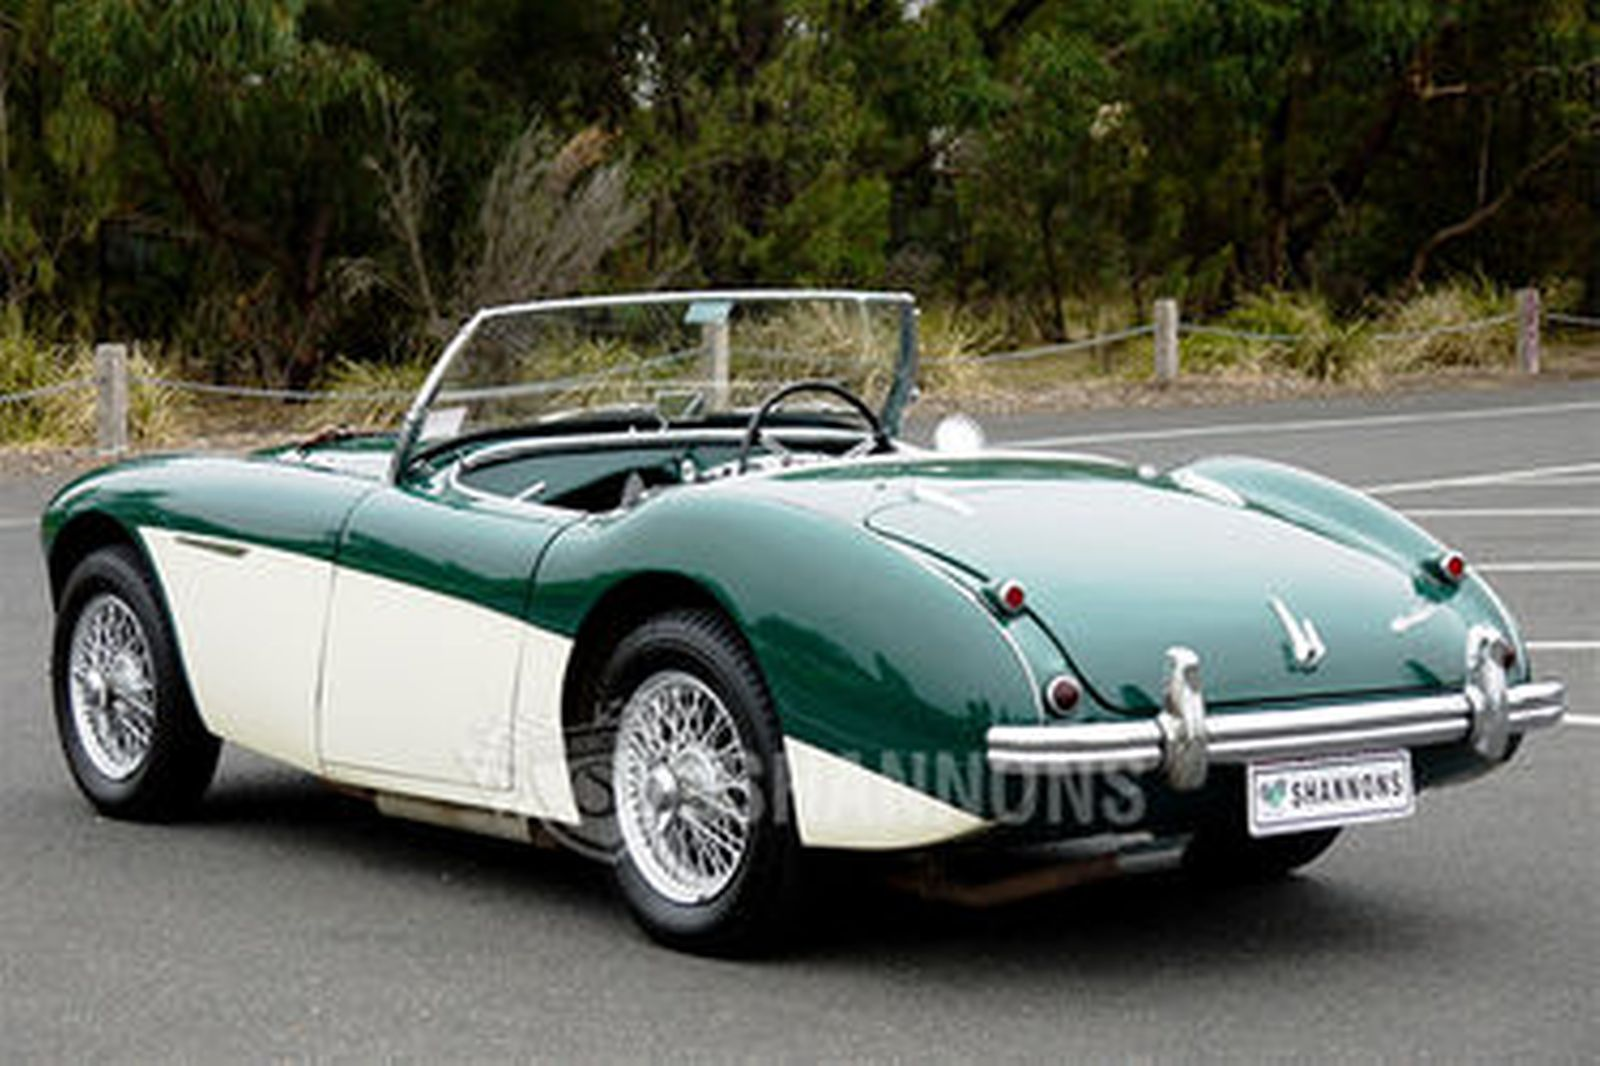 Austin Healey 100 4 Bn1 Roadster Auctions Lot 37 Shannons